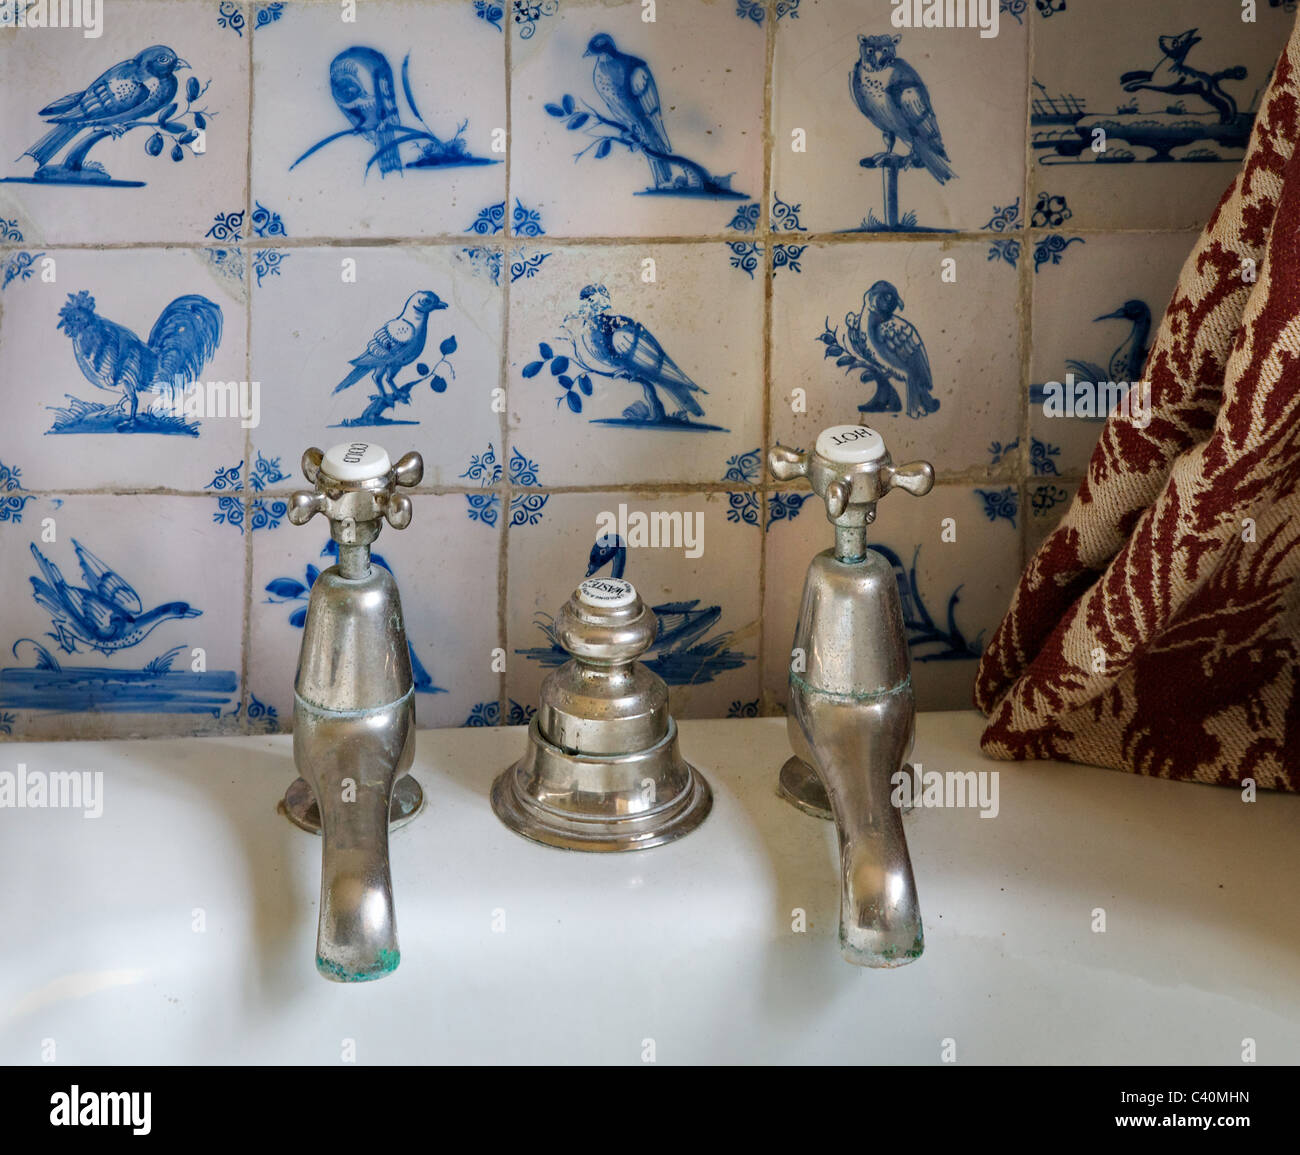 Delft blue stock photos delft blue stock images alamy old bath taps and drain control with hand painted blue delft ceramic tiles with bird motifs dailygadgetfo Image collections